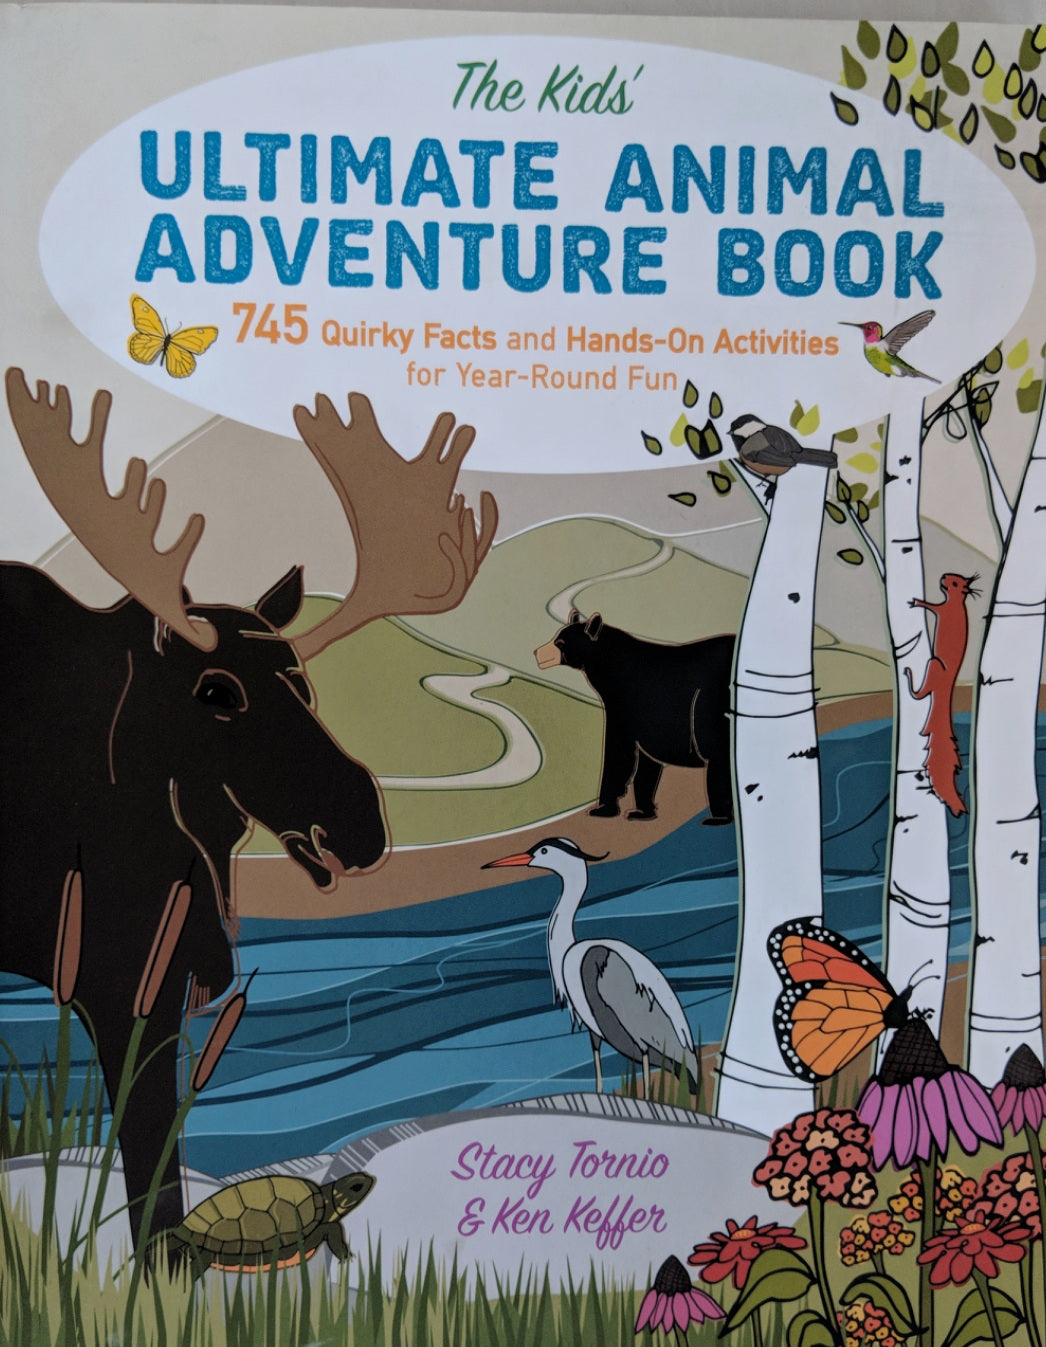 The Kid's Ultimate Animal Adventure Book